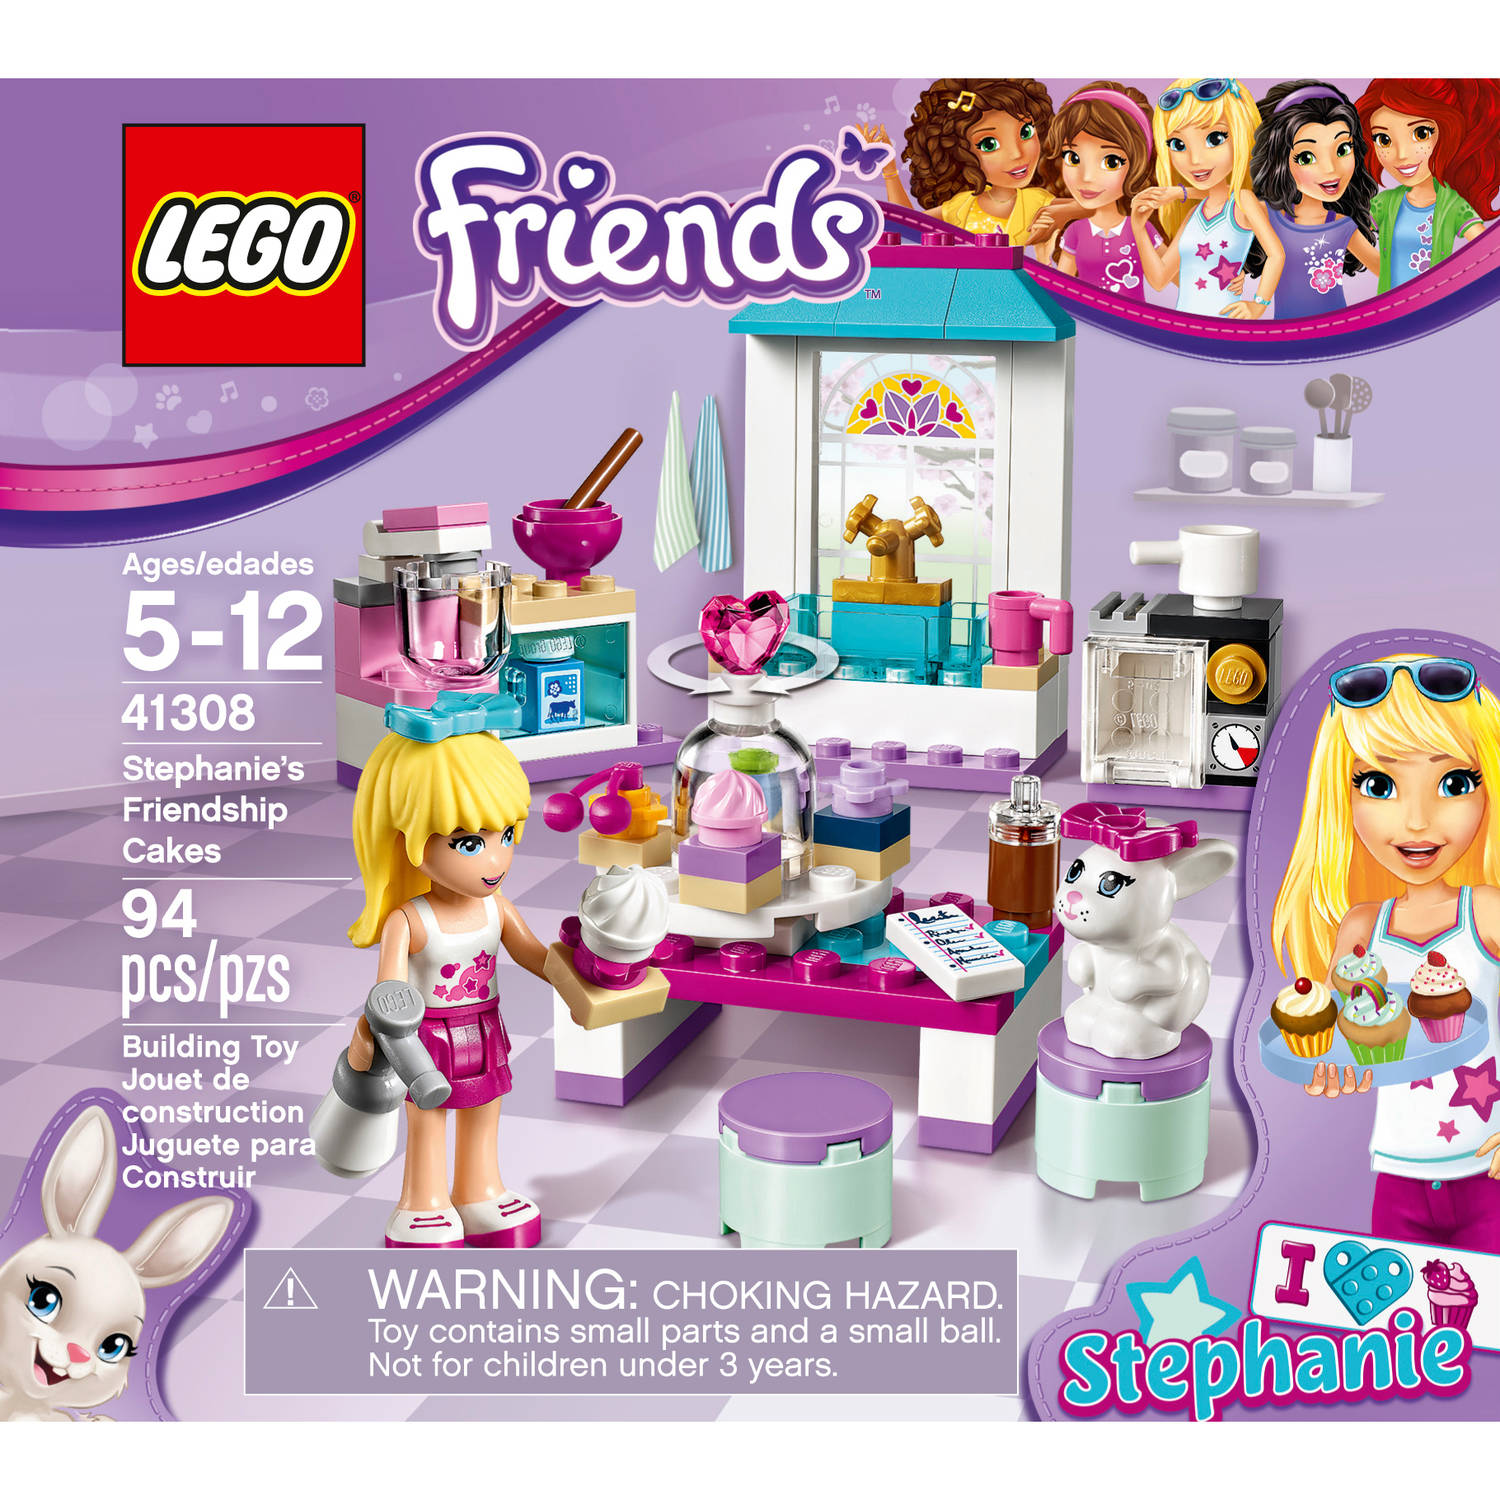 LEGO Friends Stephanies Friendship Cakes 41308 Building Kit